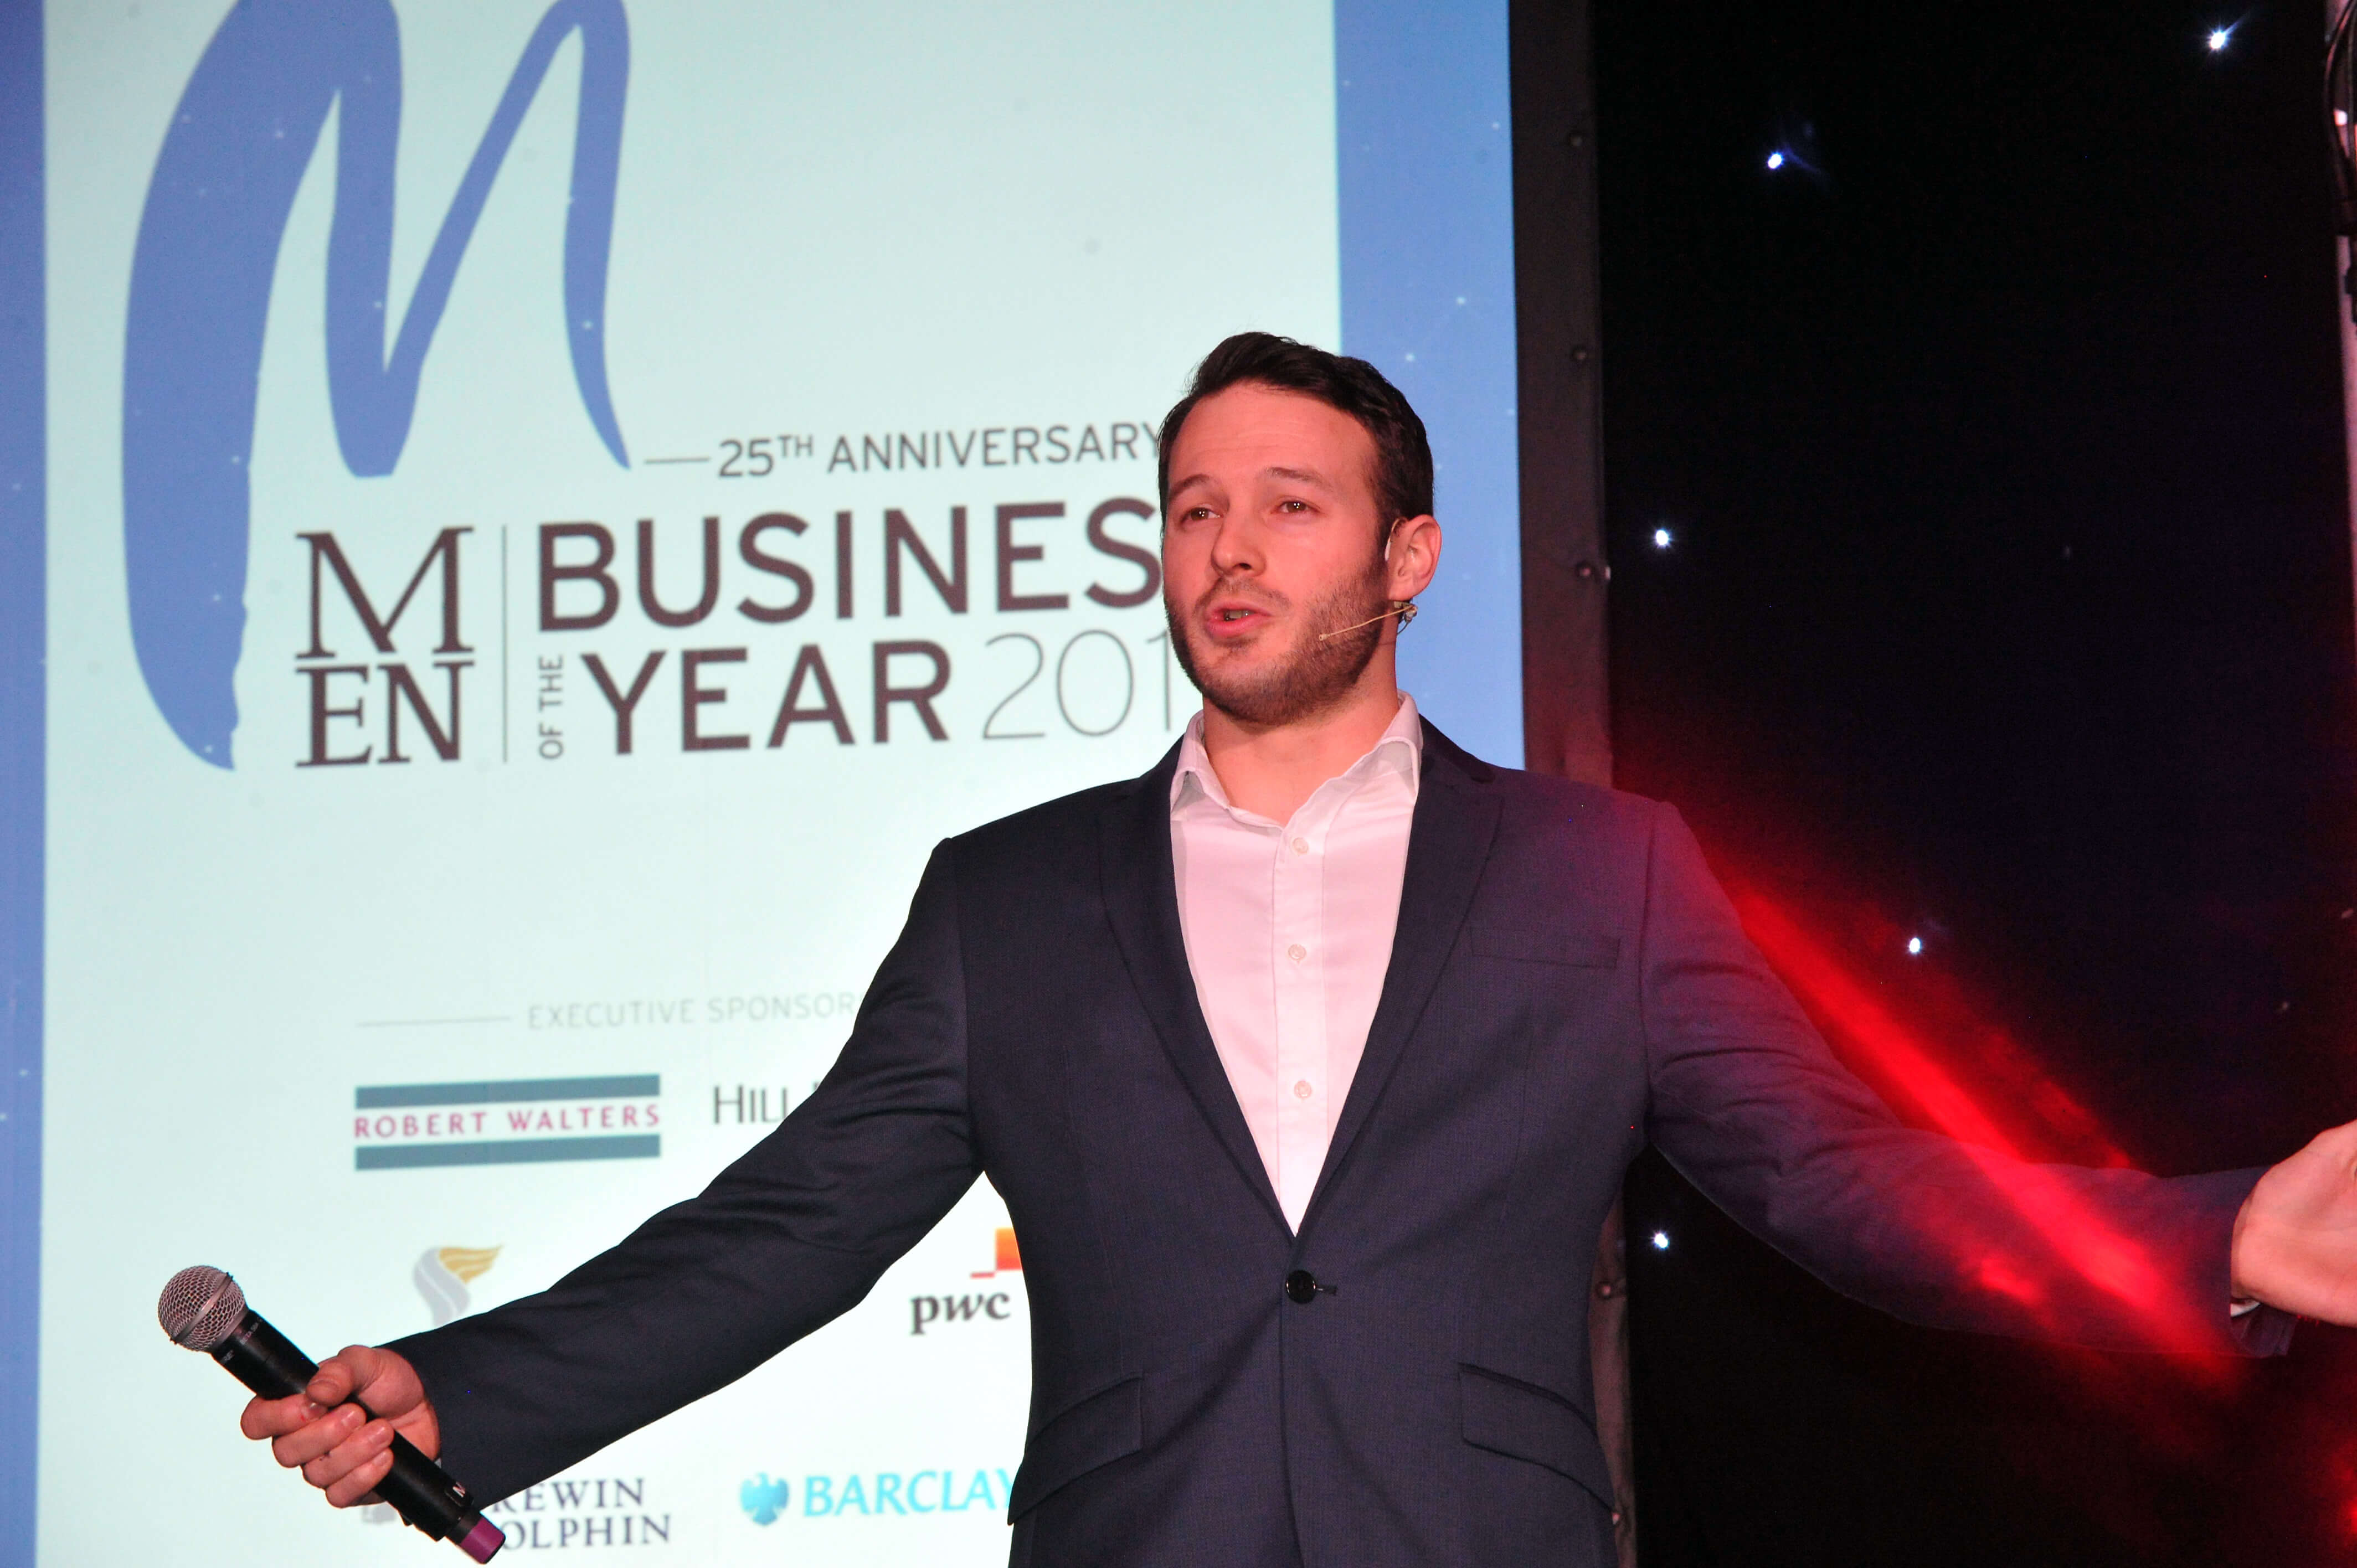 Manchester Corporate Entertainment Aaron Calvert on stage at Manchester Business Awards